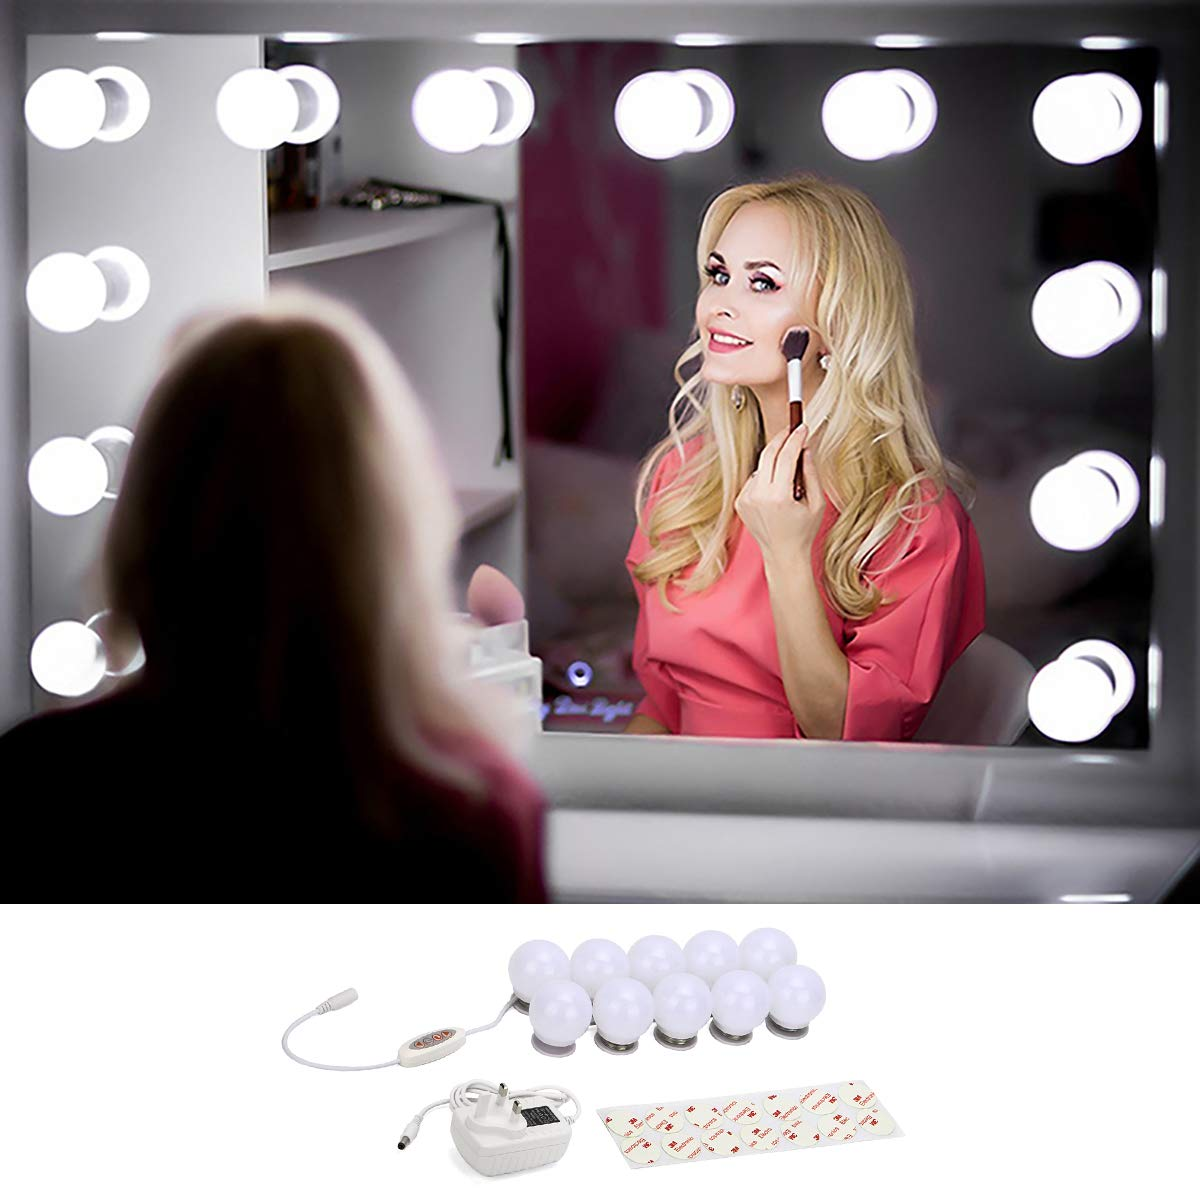 495cm Adjustable Cable Length Hollywood Style LED Vanity Mirror Lights Kit for Dressing Table 10 Dimmable Makeup Mirror Light Bulb with 5 Levels Color Temperature Warm White to Cool White